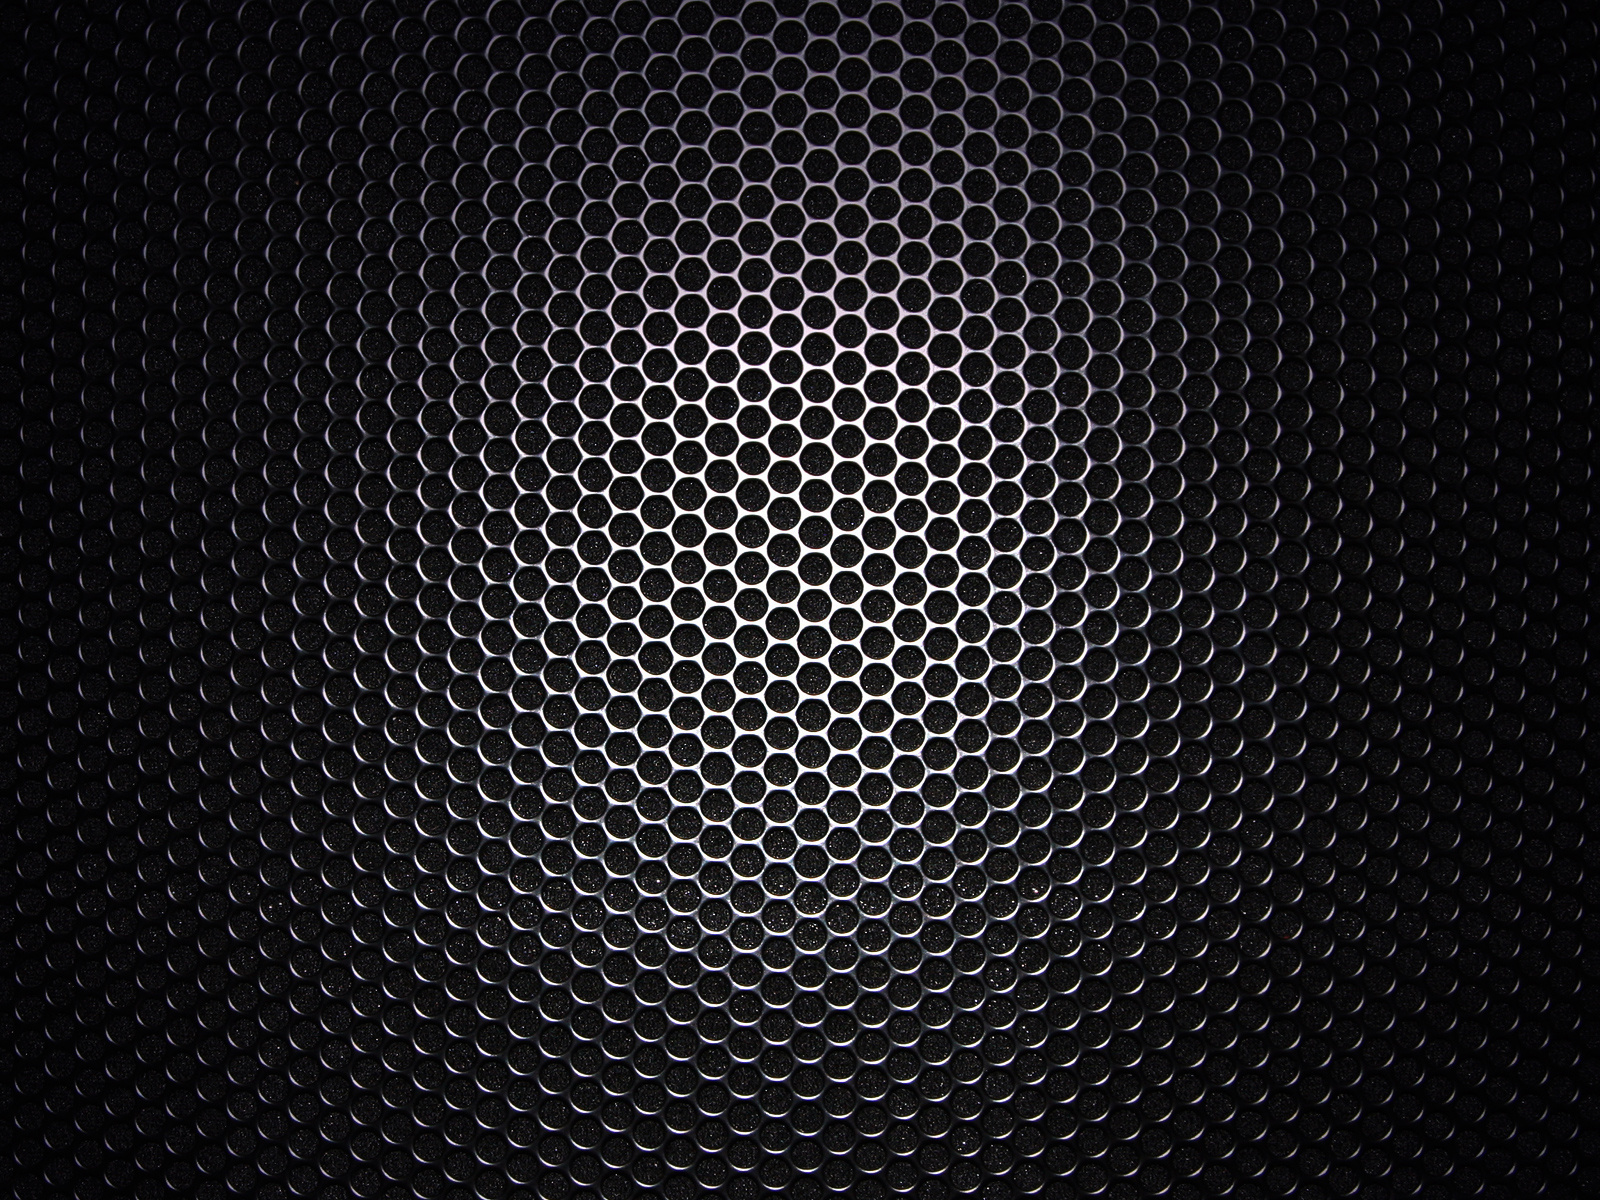 Texture Carbon Fiber Best Wallpaper 1600x1200 Full HD Wallpapers 1600x1200